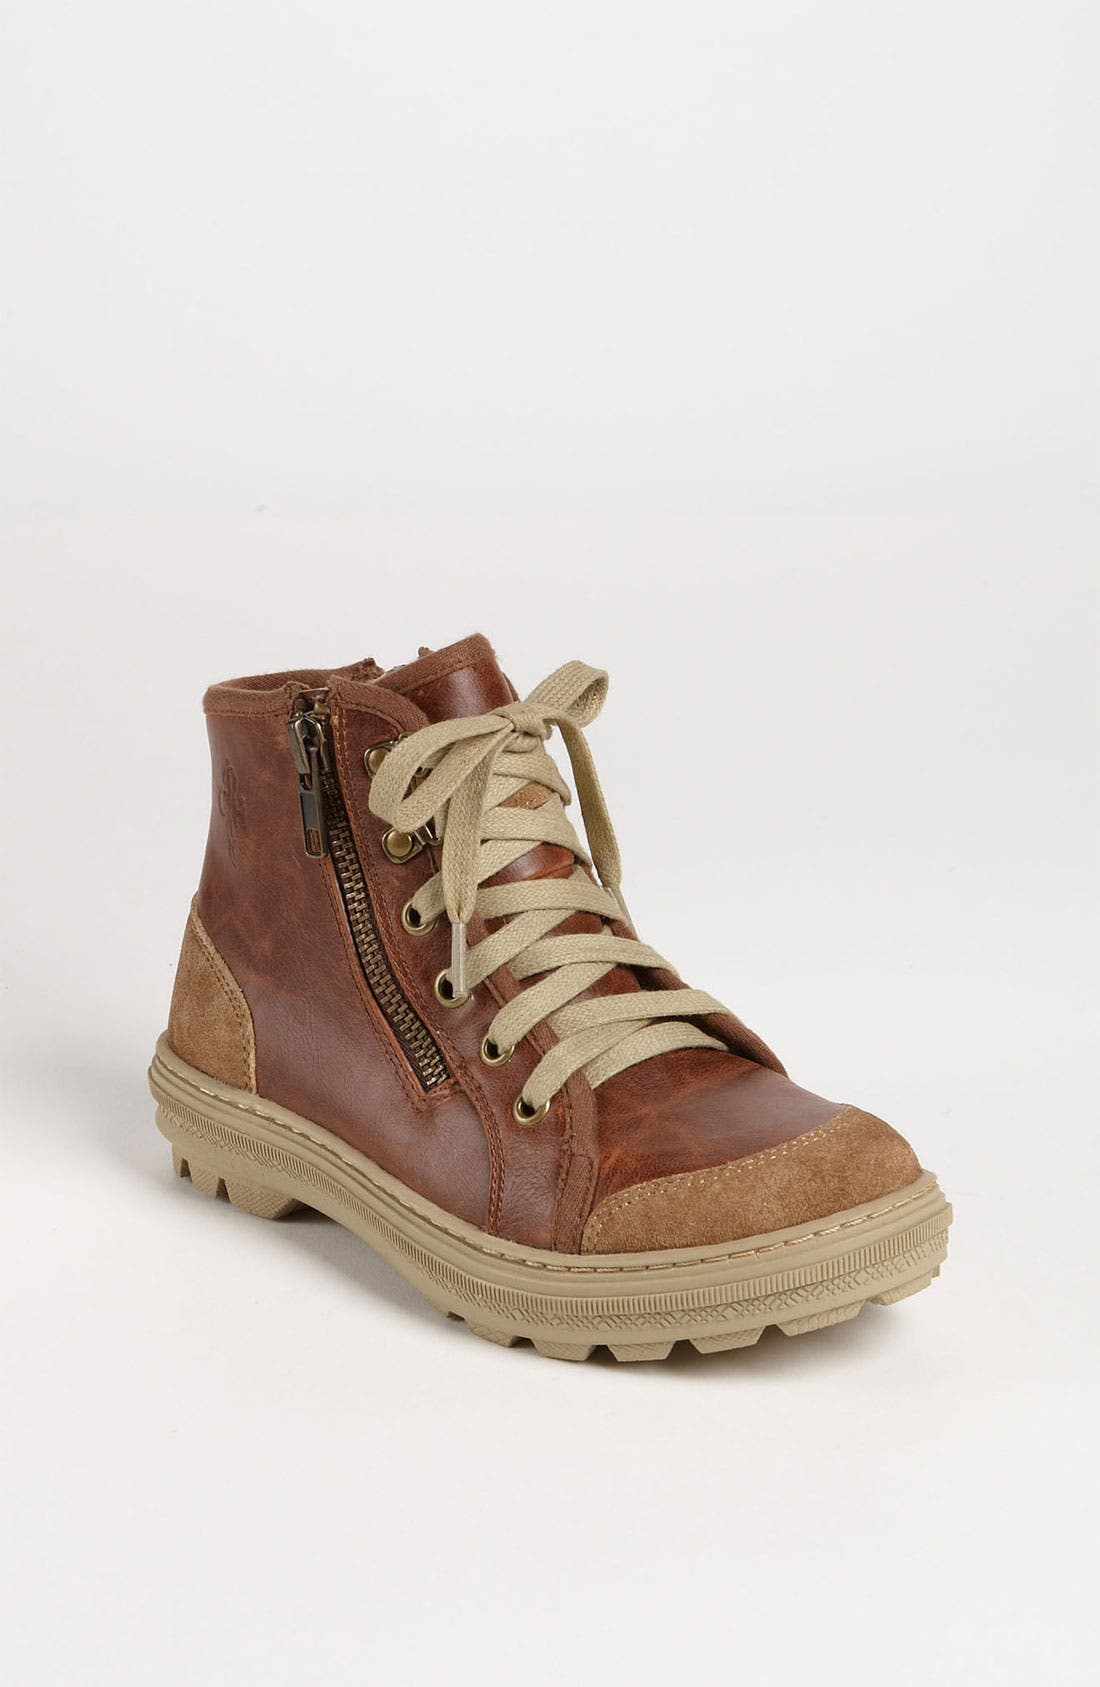 Alternate Image 1 Selected - Cole Haan 'Air Aqua' Zipper Boot (Little Kid & Big Kid)